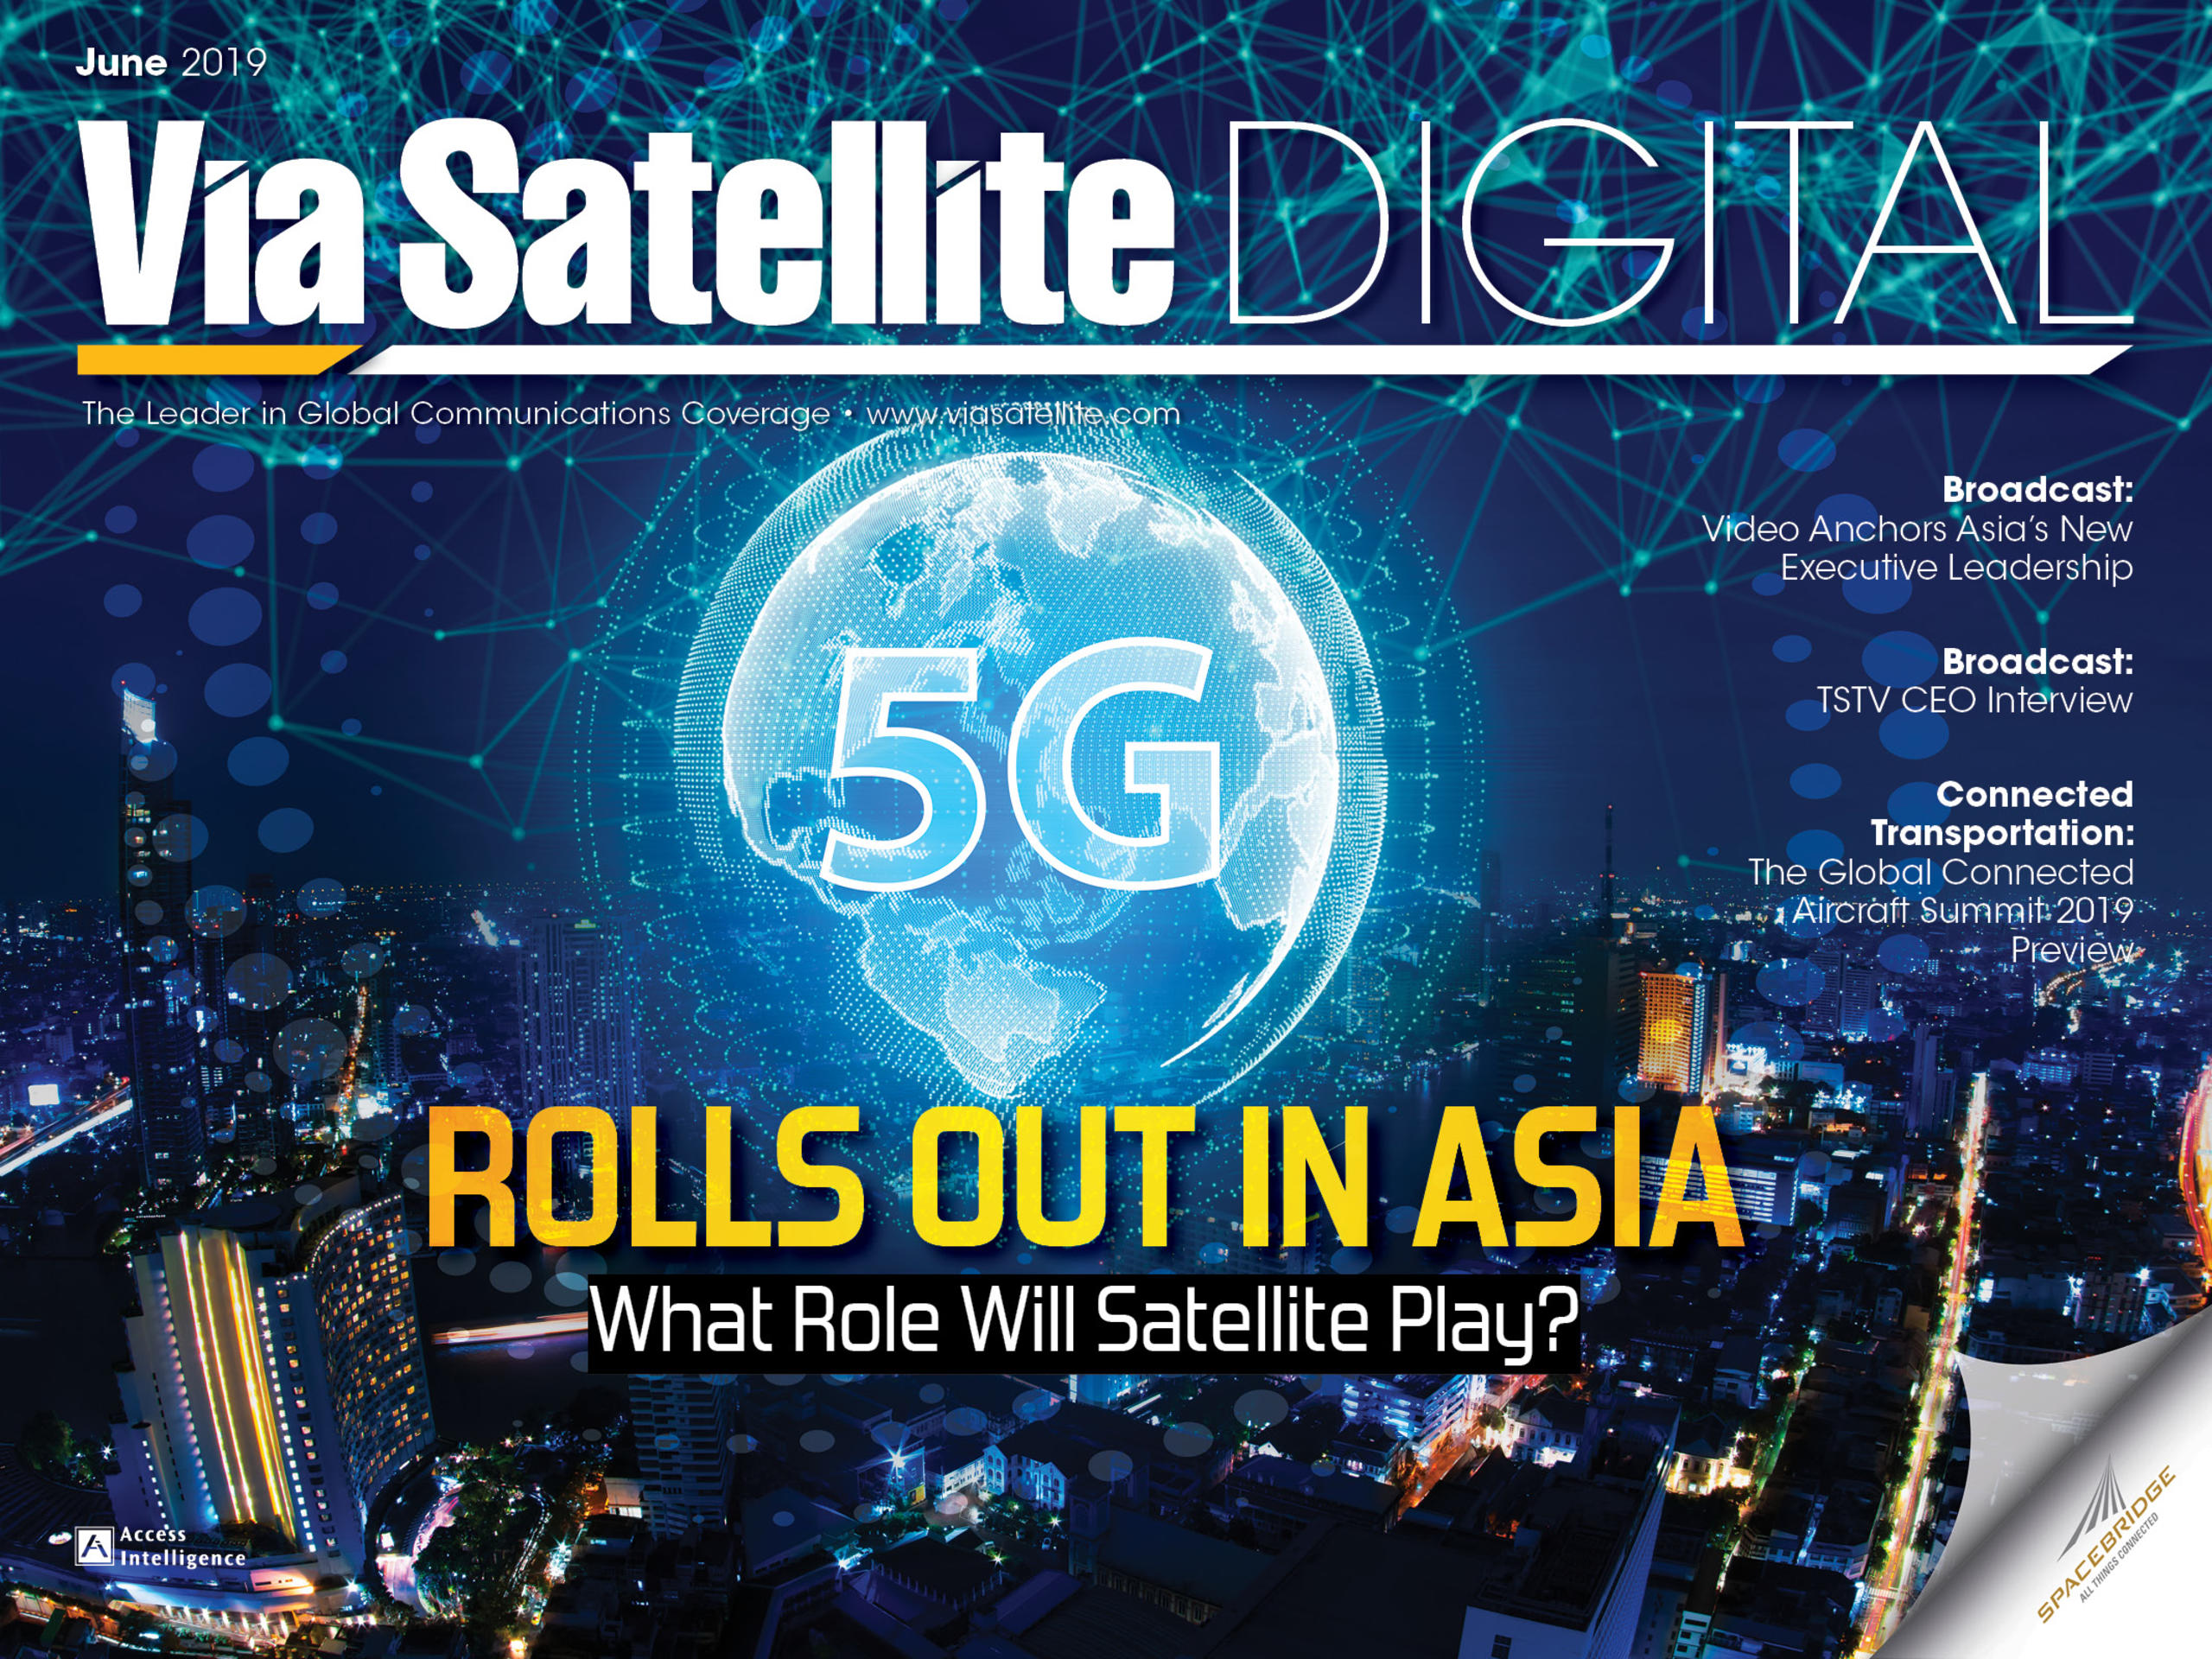 June 2019 - 5G Rolls Out in Asia: What Role Will Satellite Play